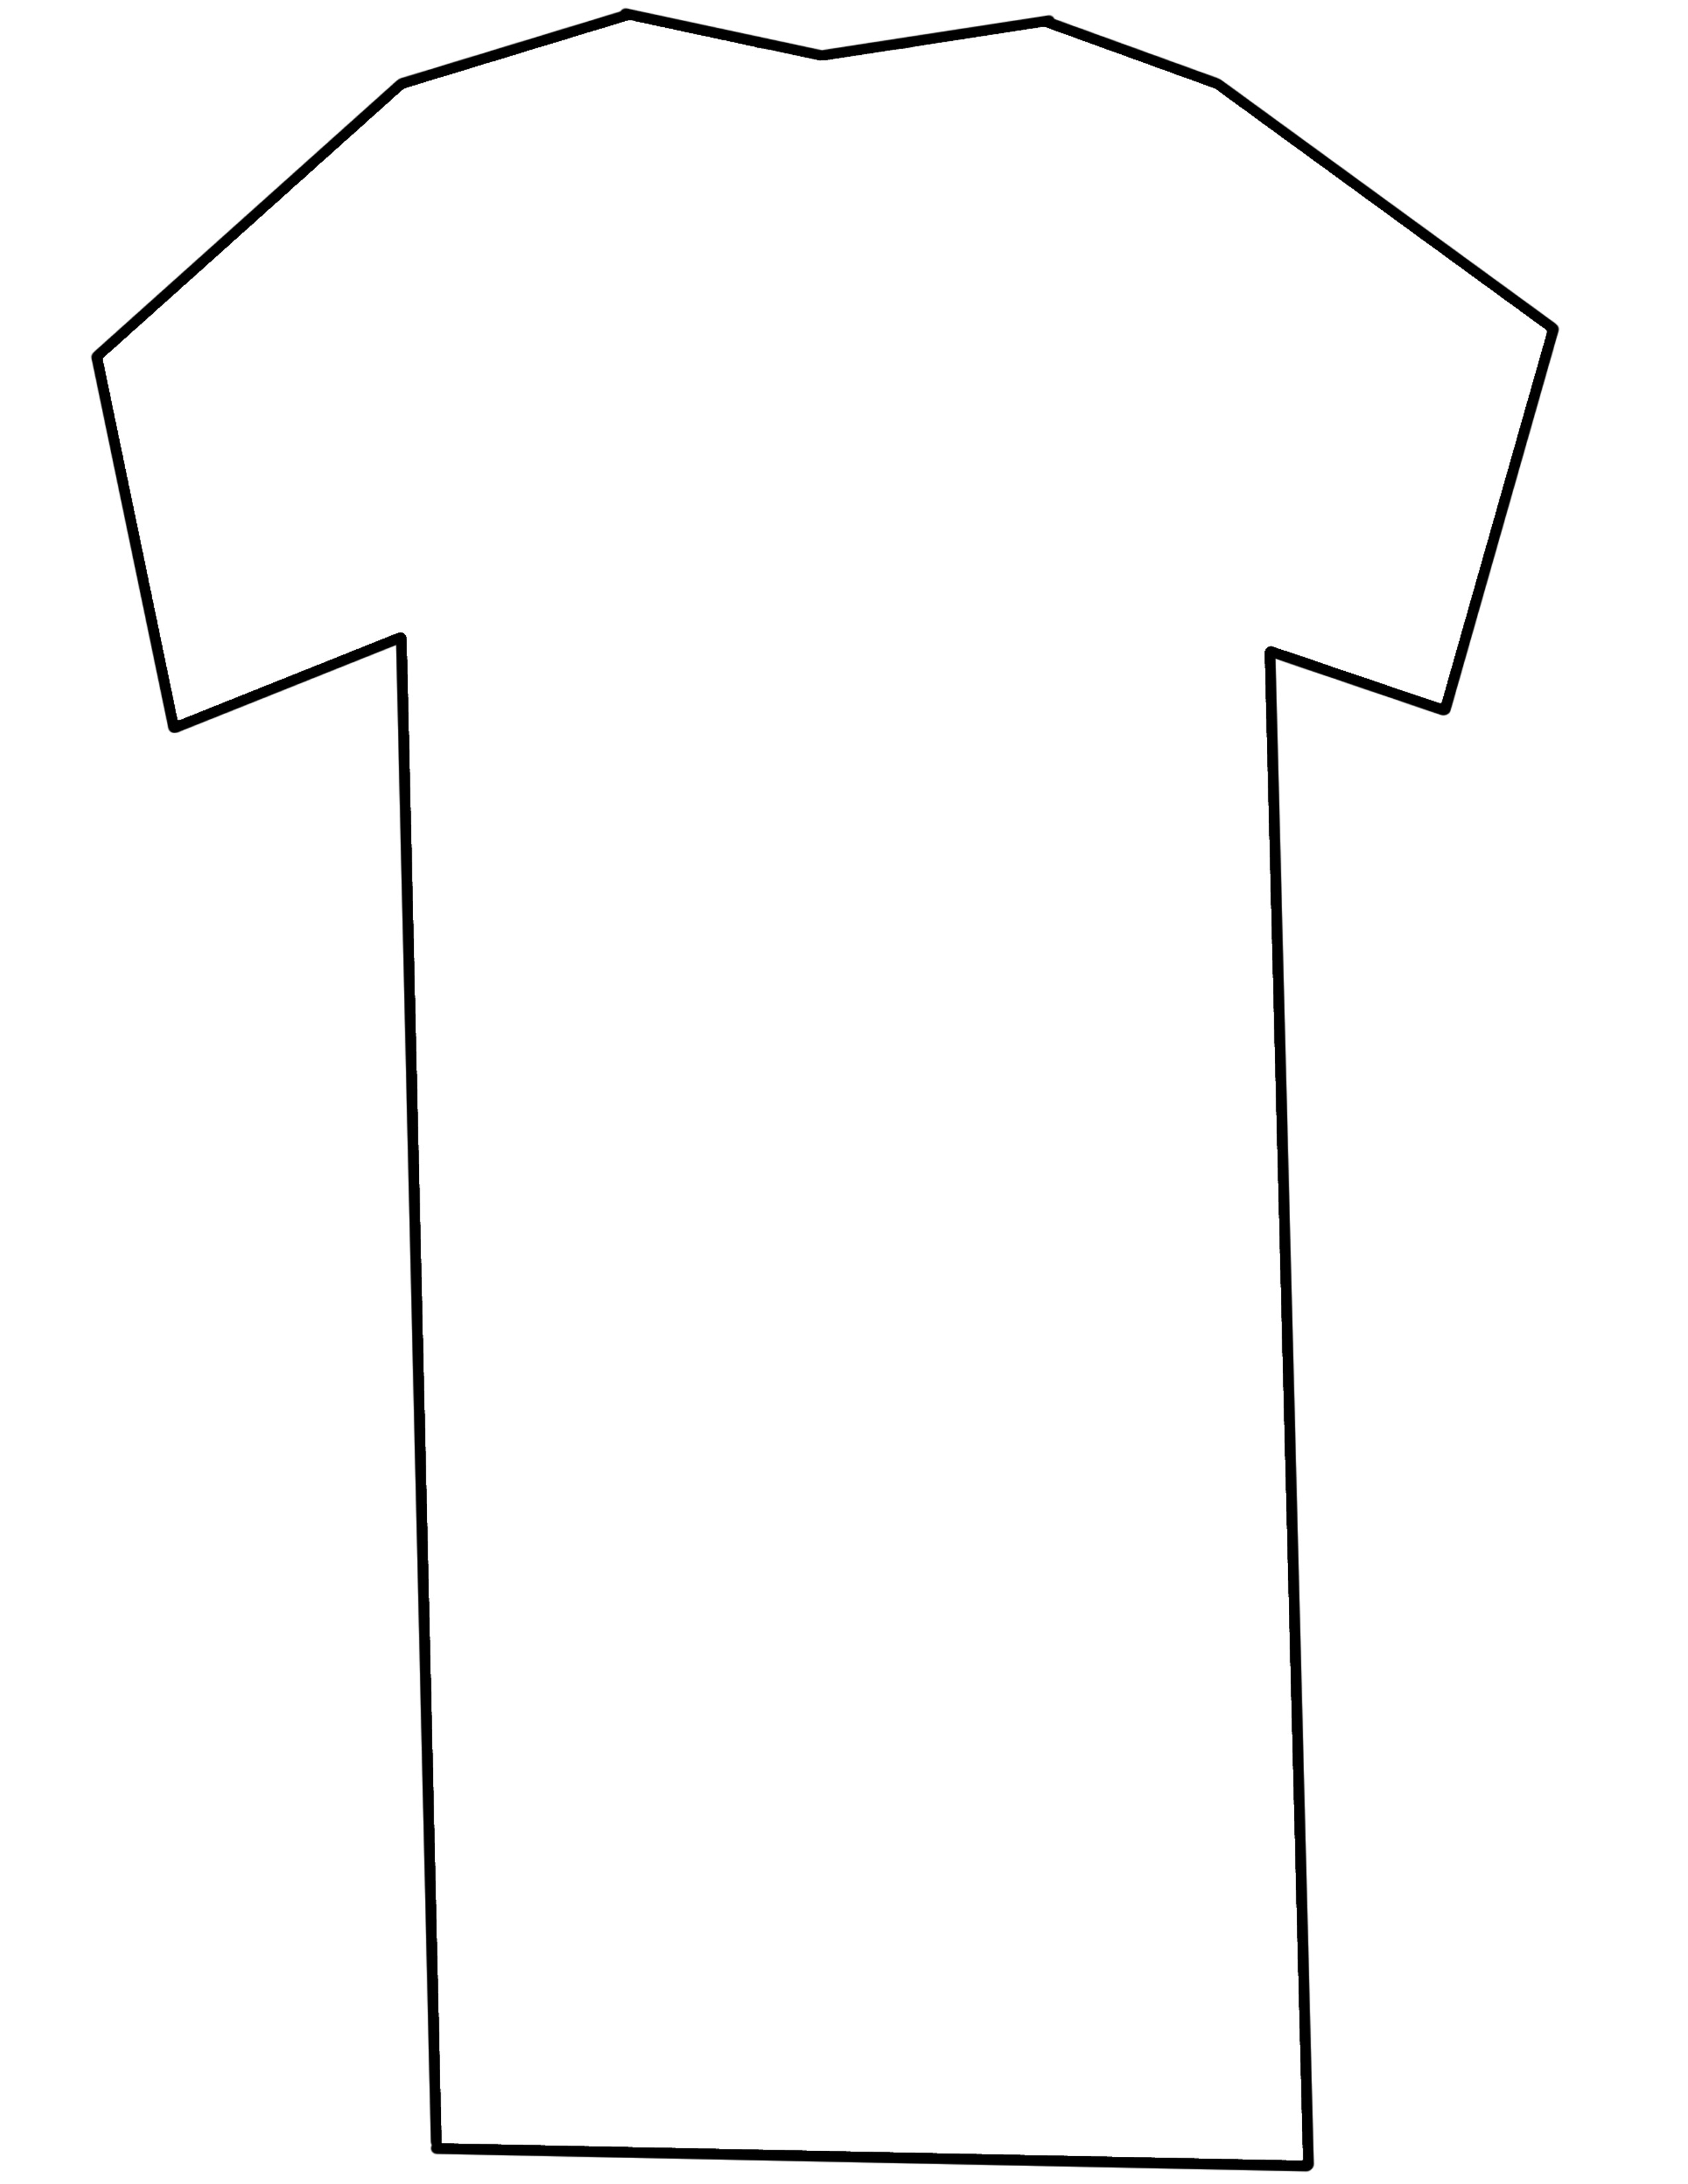 T Shirt Template Printable - ClipArt Best